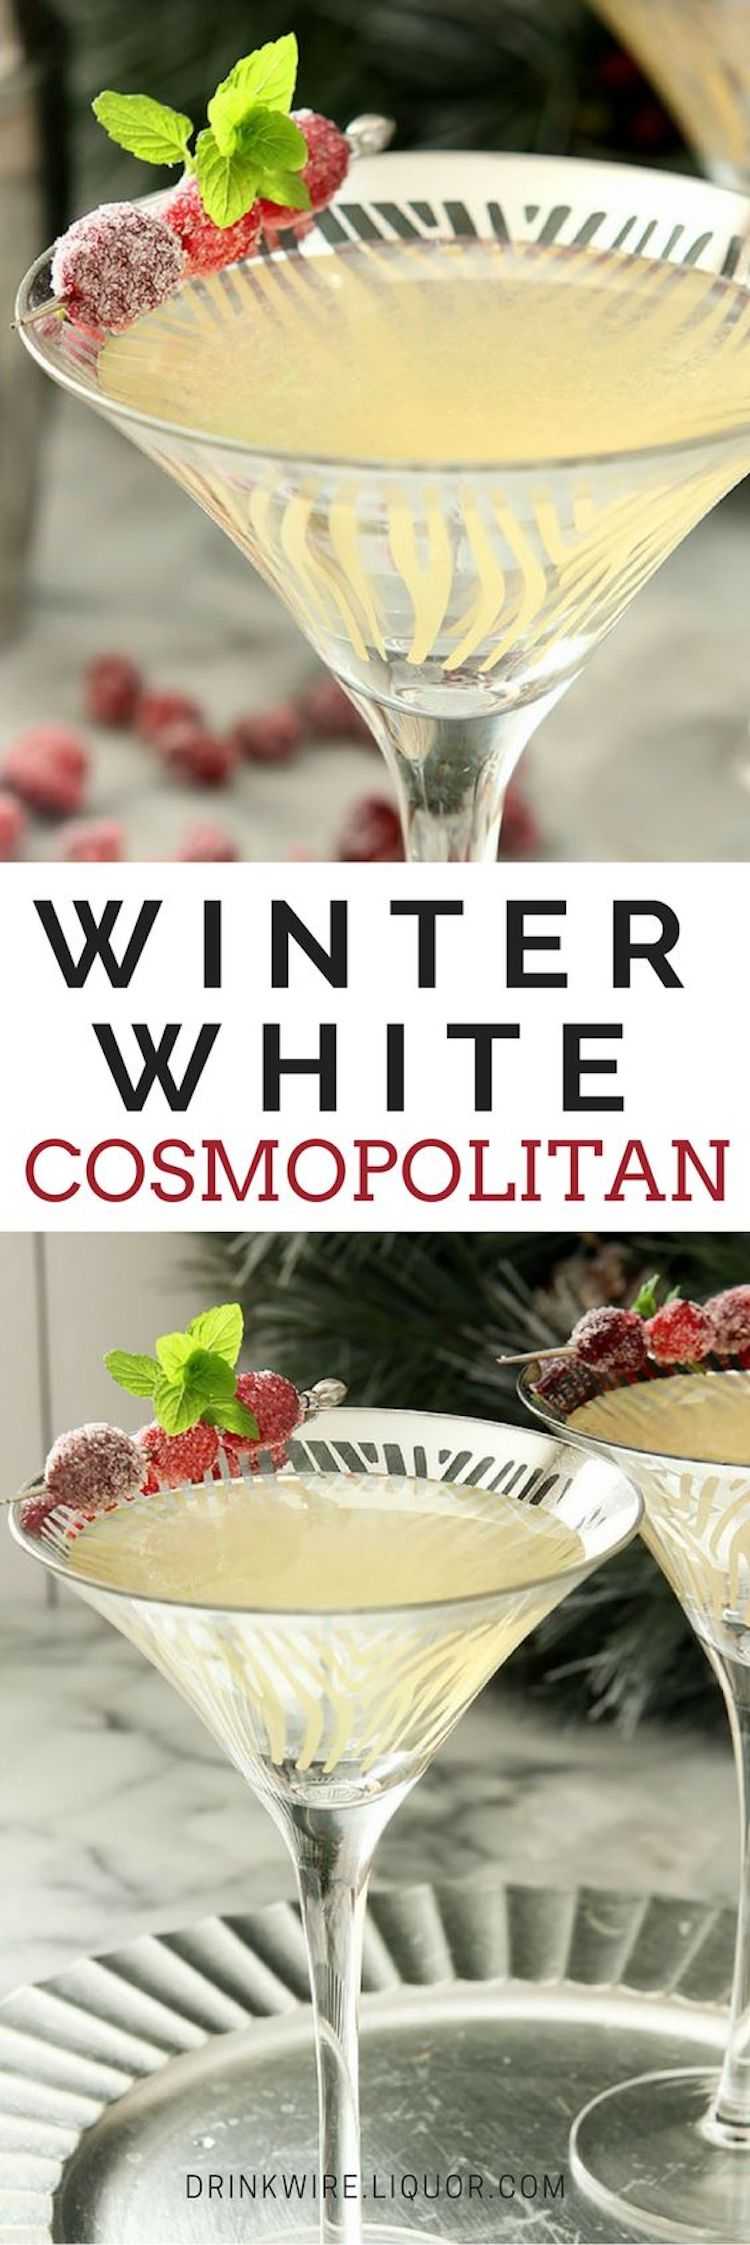 The Winter White Cosmopolitan